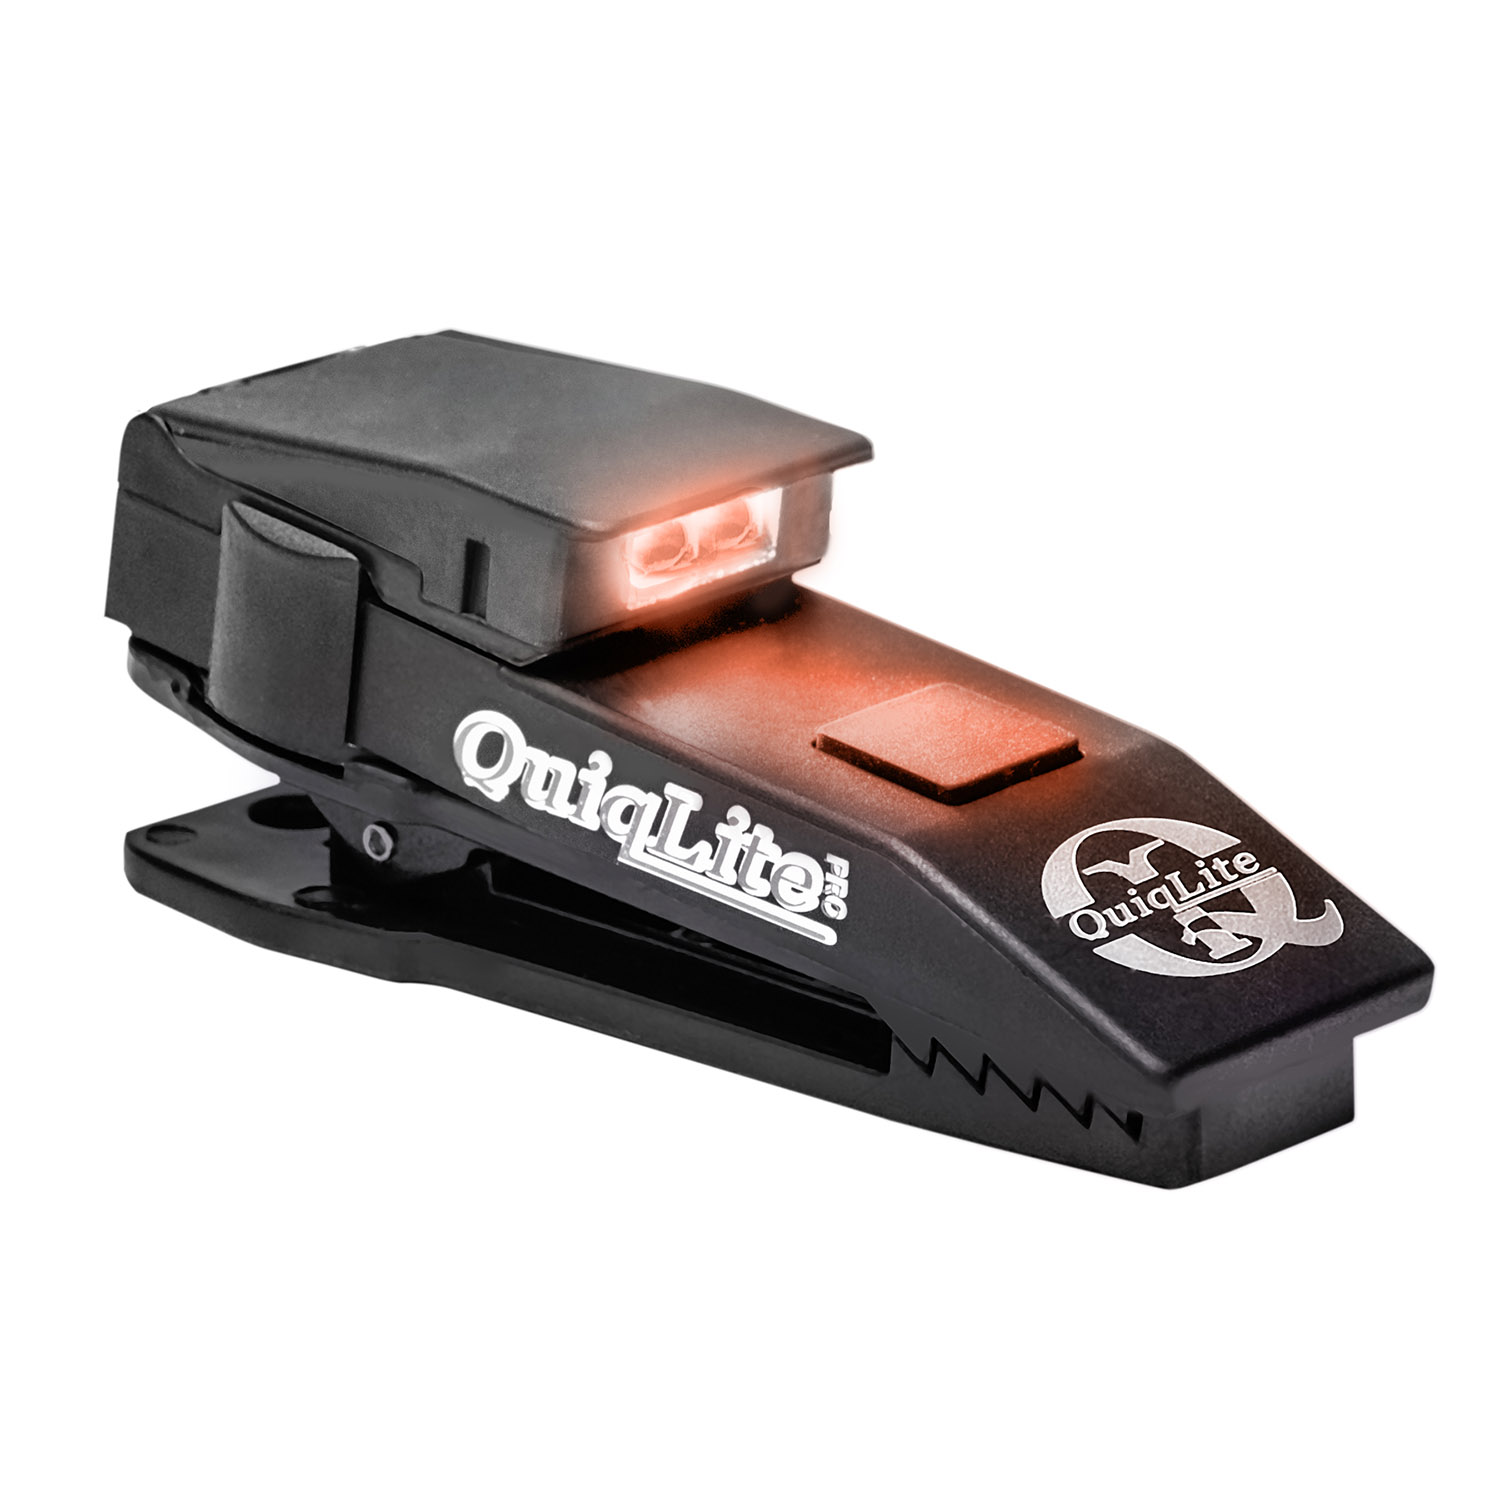 QuiLlite Pro Clip LED Light